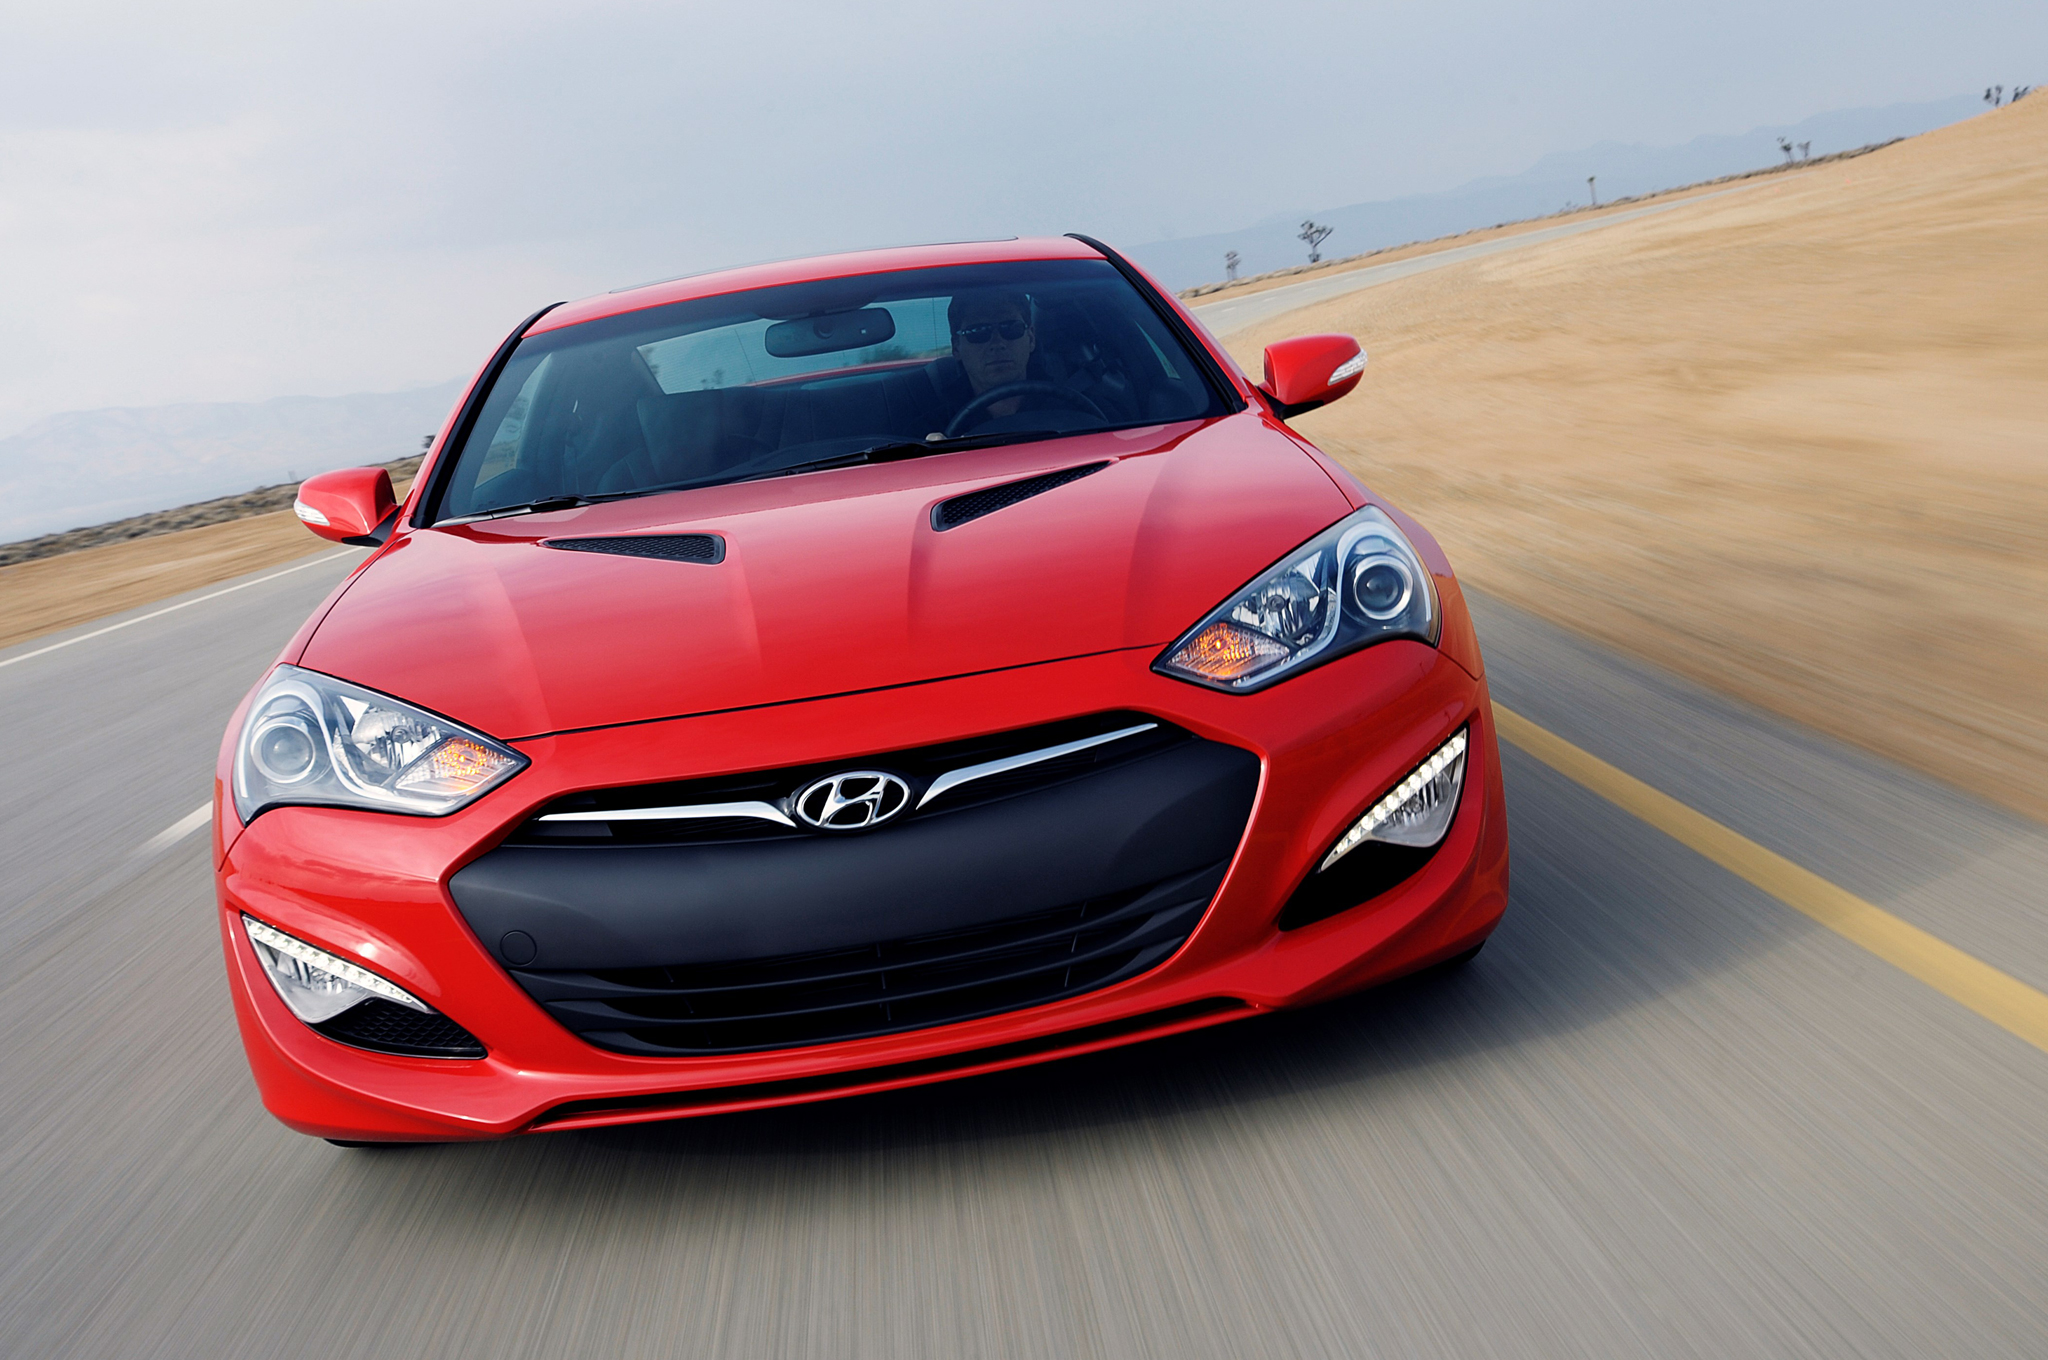 Wonderful We Hear: 2015 Hyundai Genesis Coupe Drops Turbo 2.0 Liter